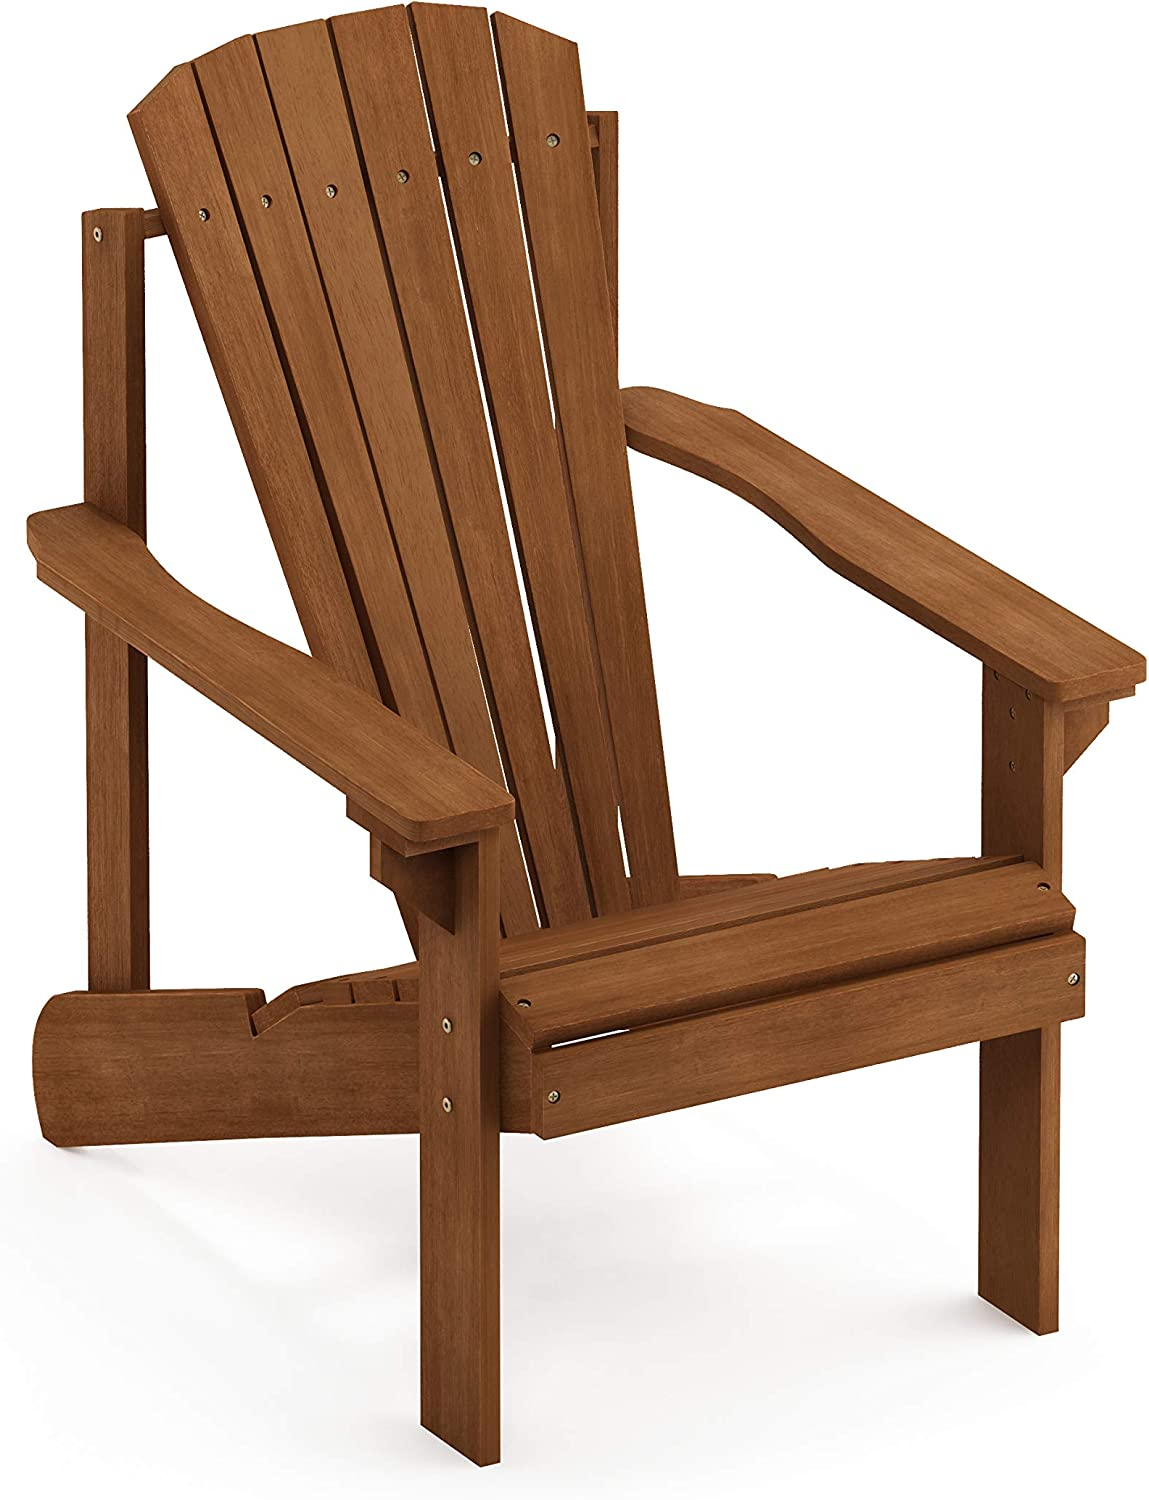 Furinno FG18921 Tioman Hardwood Furniture Small Adirondack Patio Chair, Natural